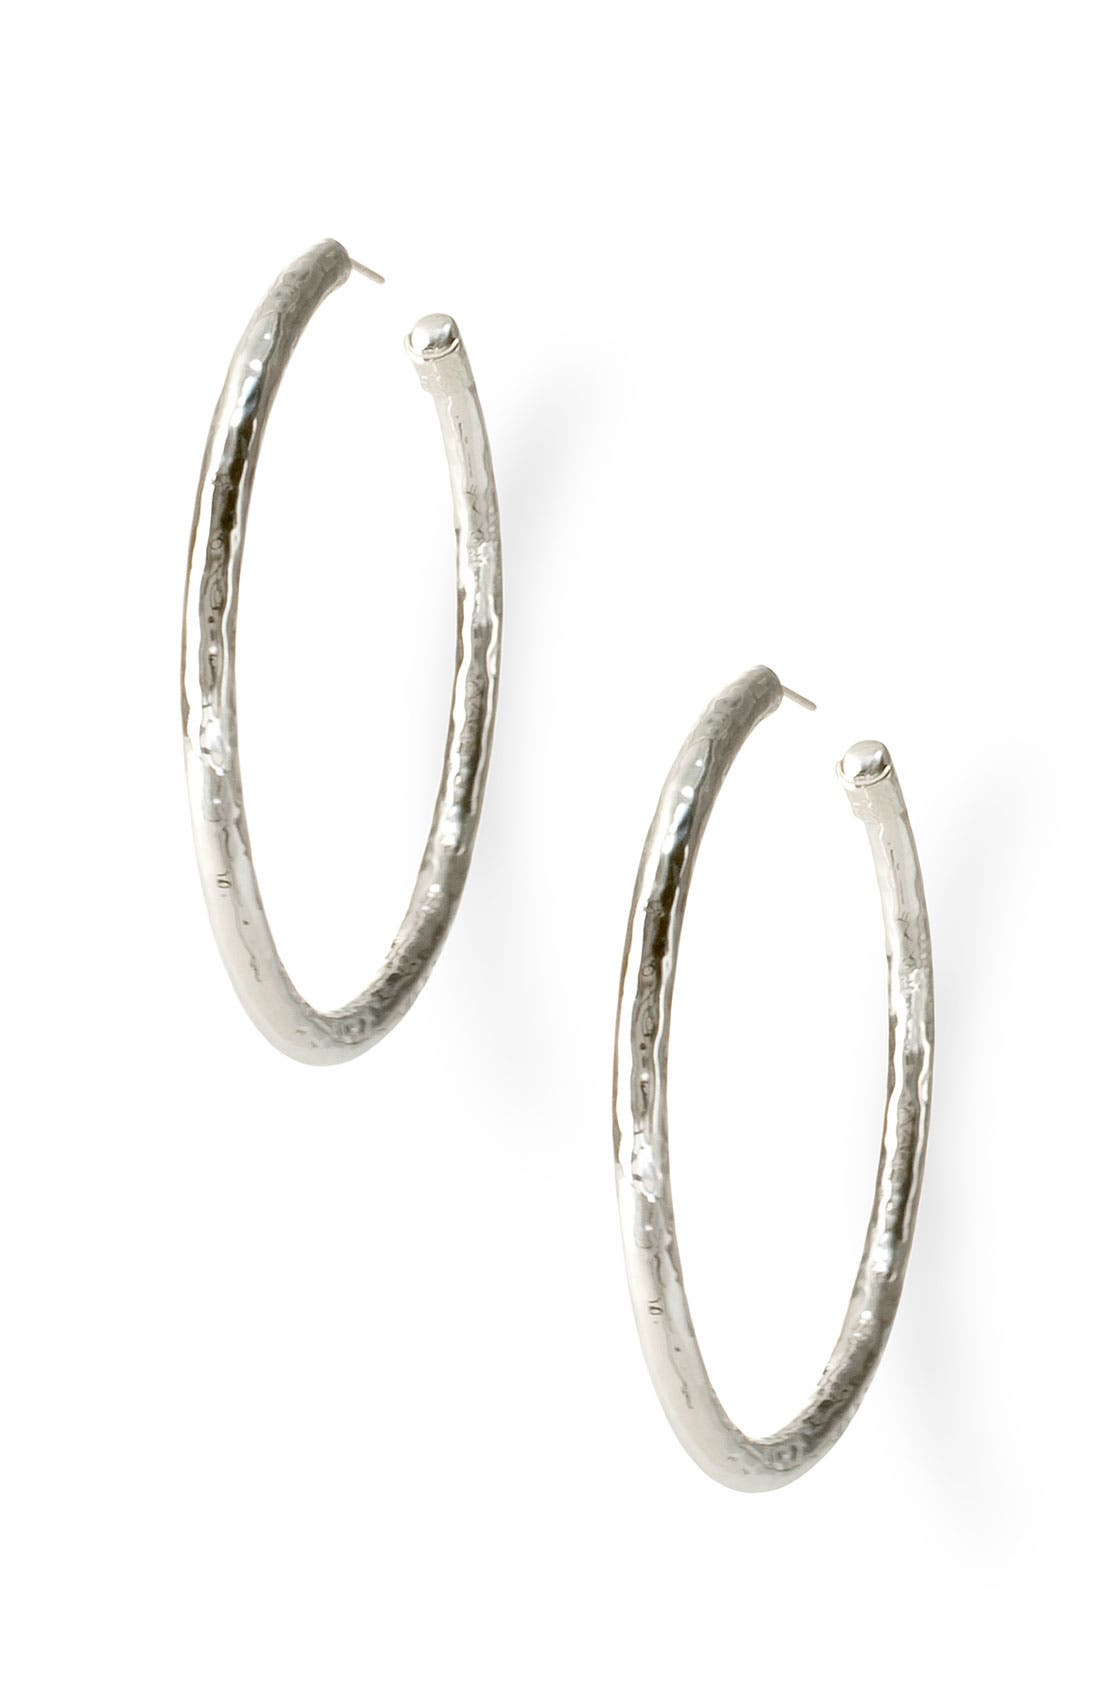 Main Image - Ippolita 'Glamazon - Number 4' Skinny Hammered Hoop Earrings